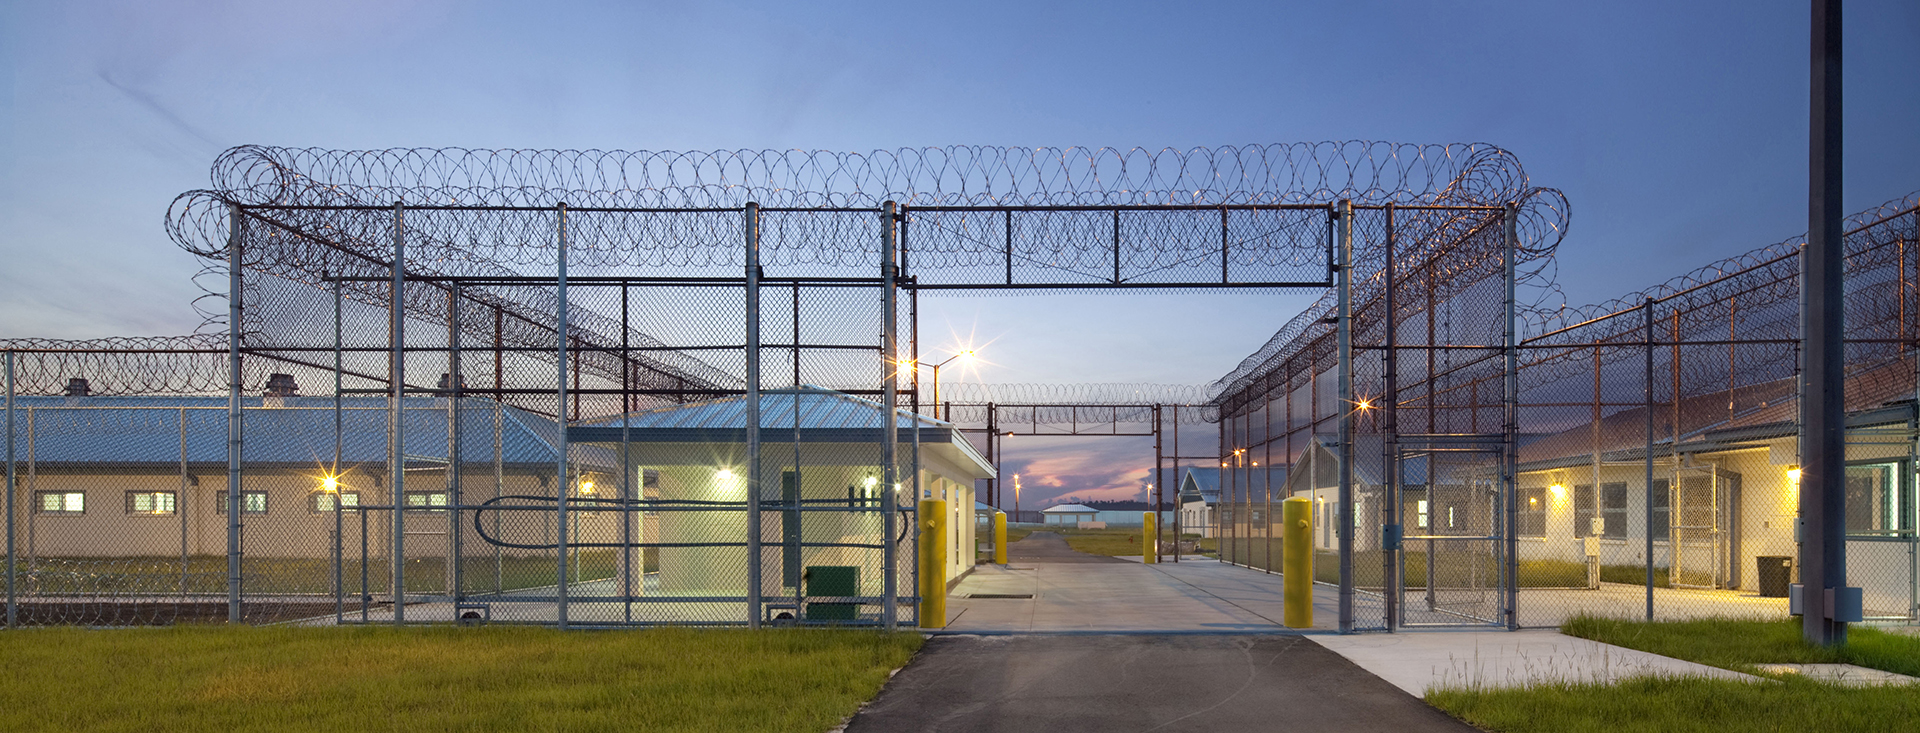 Okeechobee Correctional Institution Work Camp Moss Cm